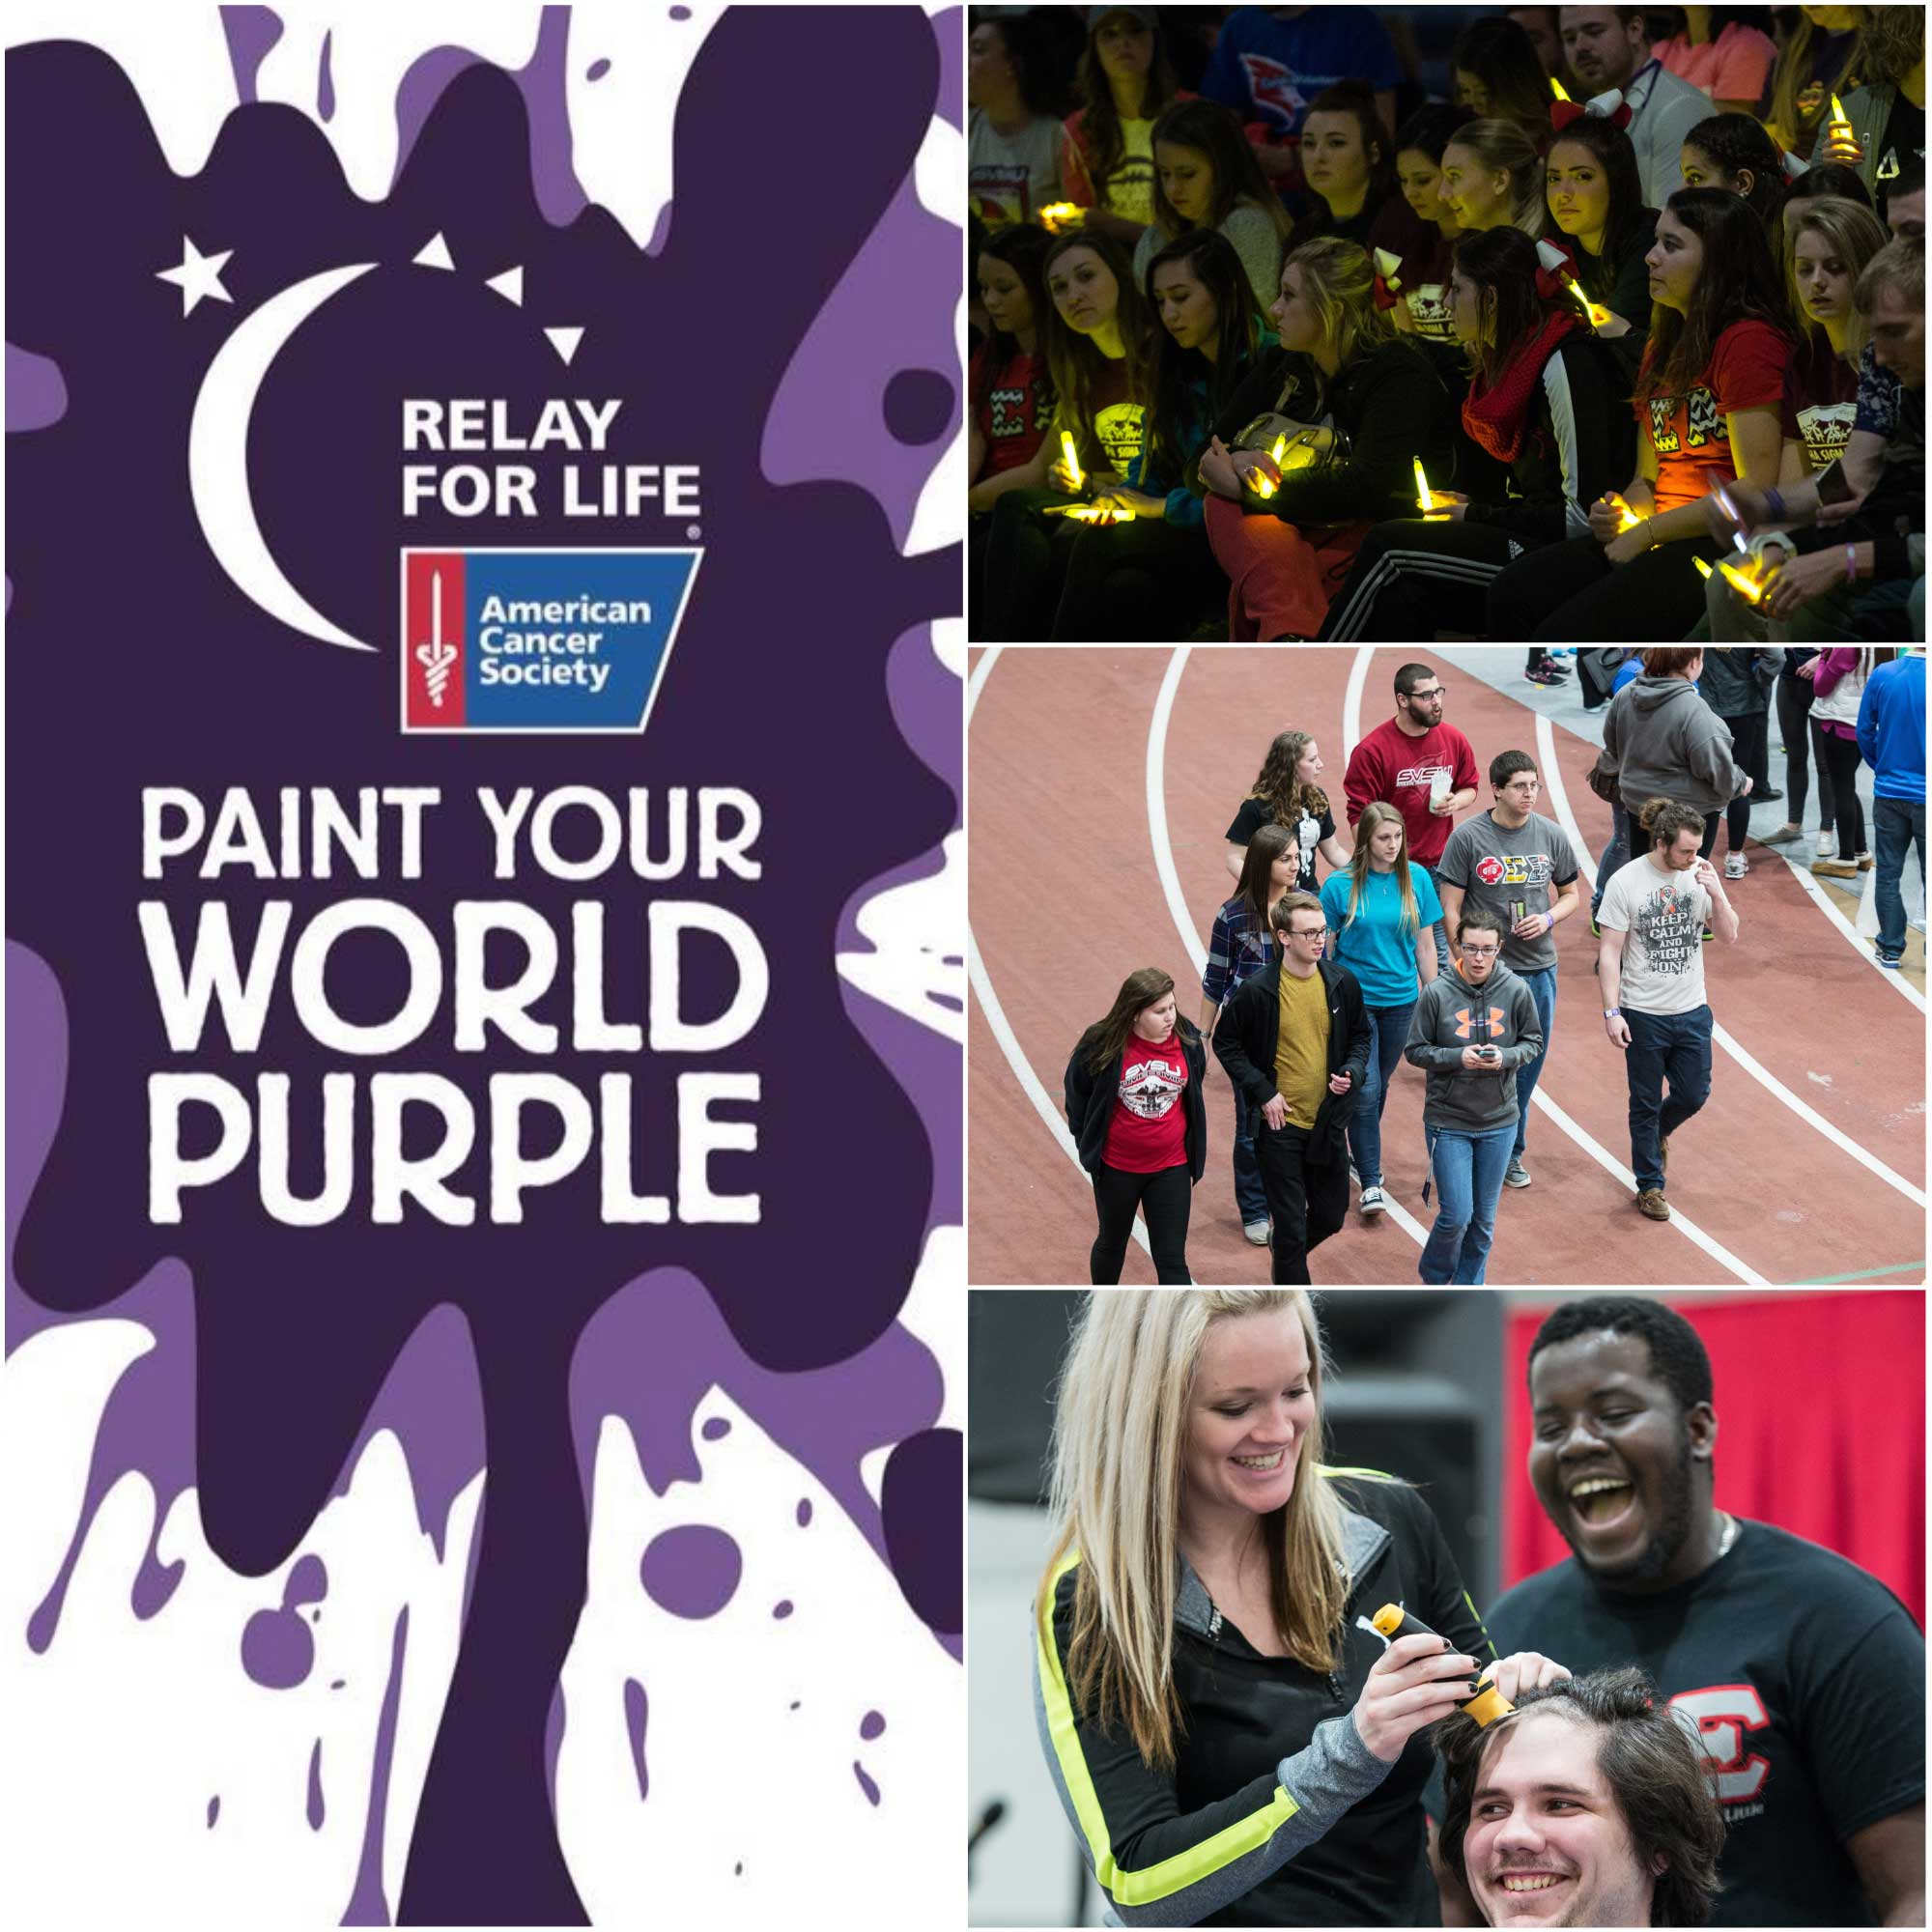 Paint your world purple relay for life promotional graphic